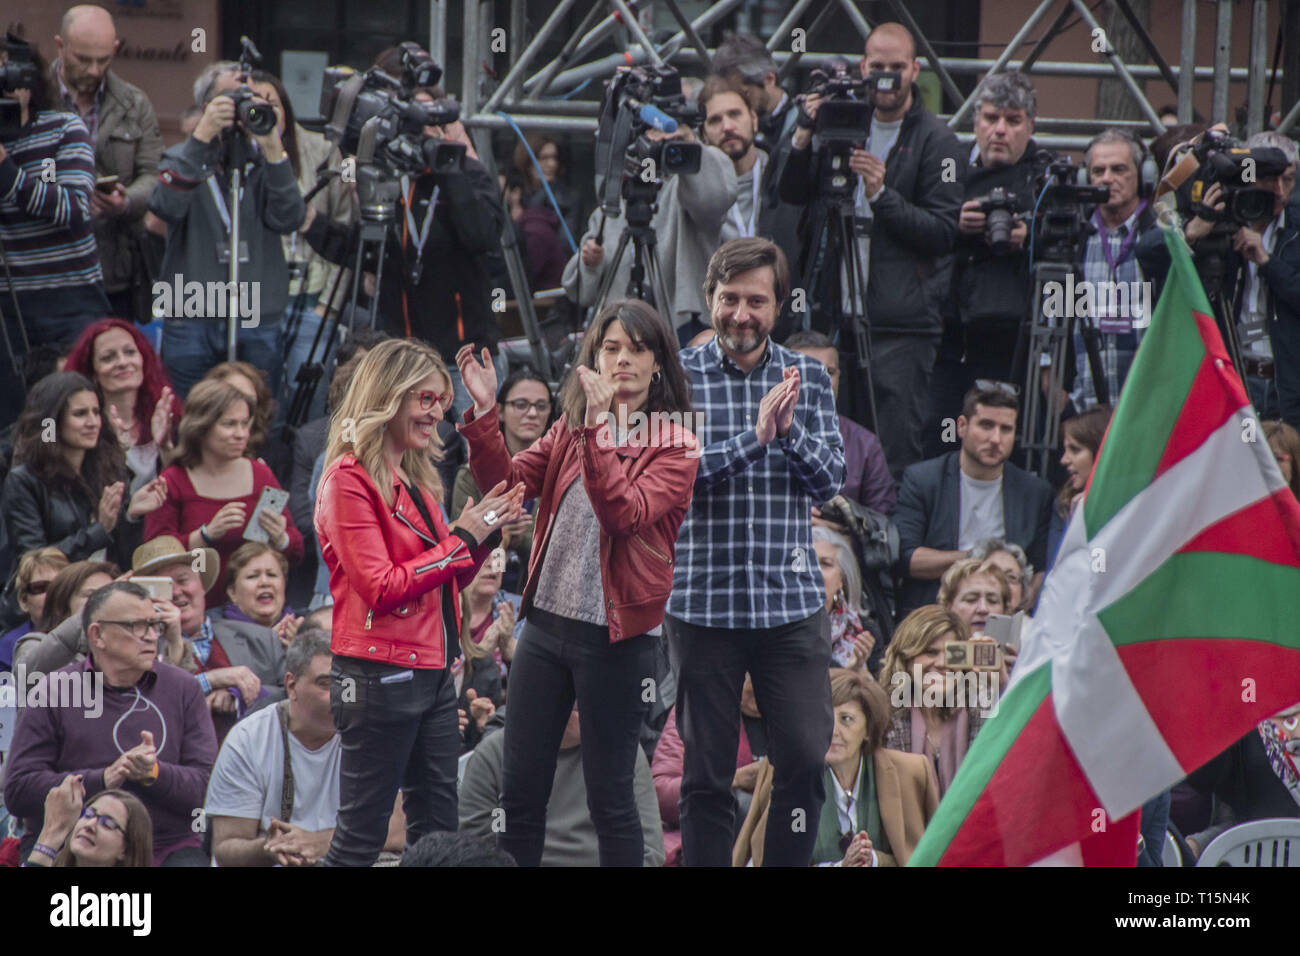 Madrid, Spain. 23rd Mar, 2019. Isabel Serra candidate for mayor of Madrid seen during the presentation.The left party presentation of the return of paternity permission of Pablo Iglesias at the square attached to the reina sofia de Madrid museum. Pablo Iglesias reappears in the public scene to enjoy the paternity leave. Credit: Alberto Sibaja/SOPA Images/ZUMA Wire/Alamy Live News - Stock Image